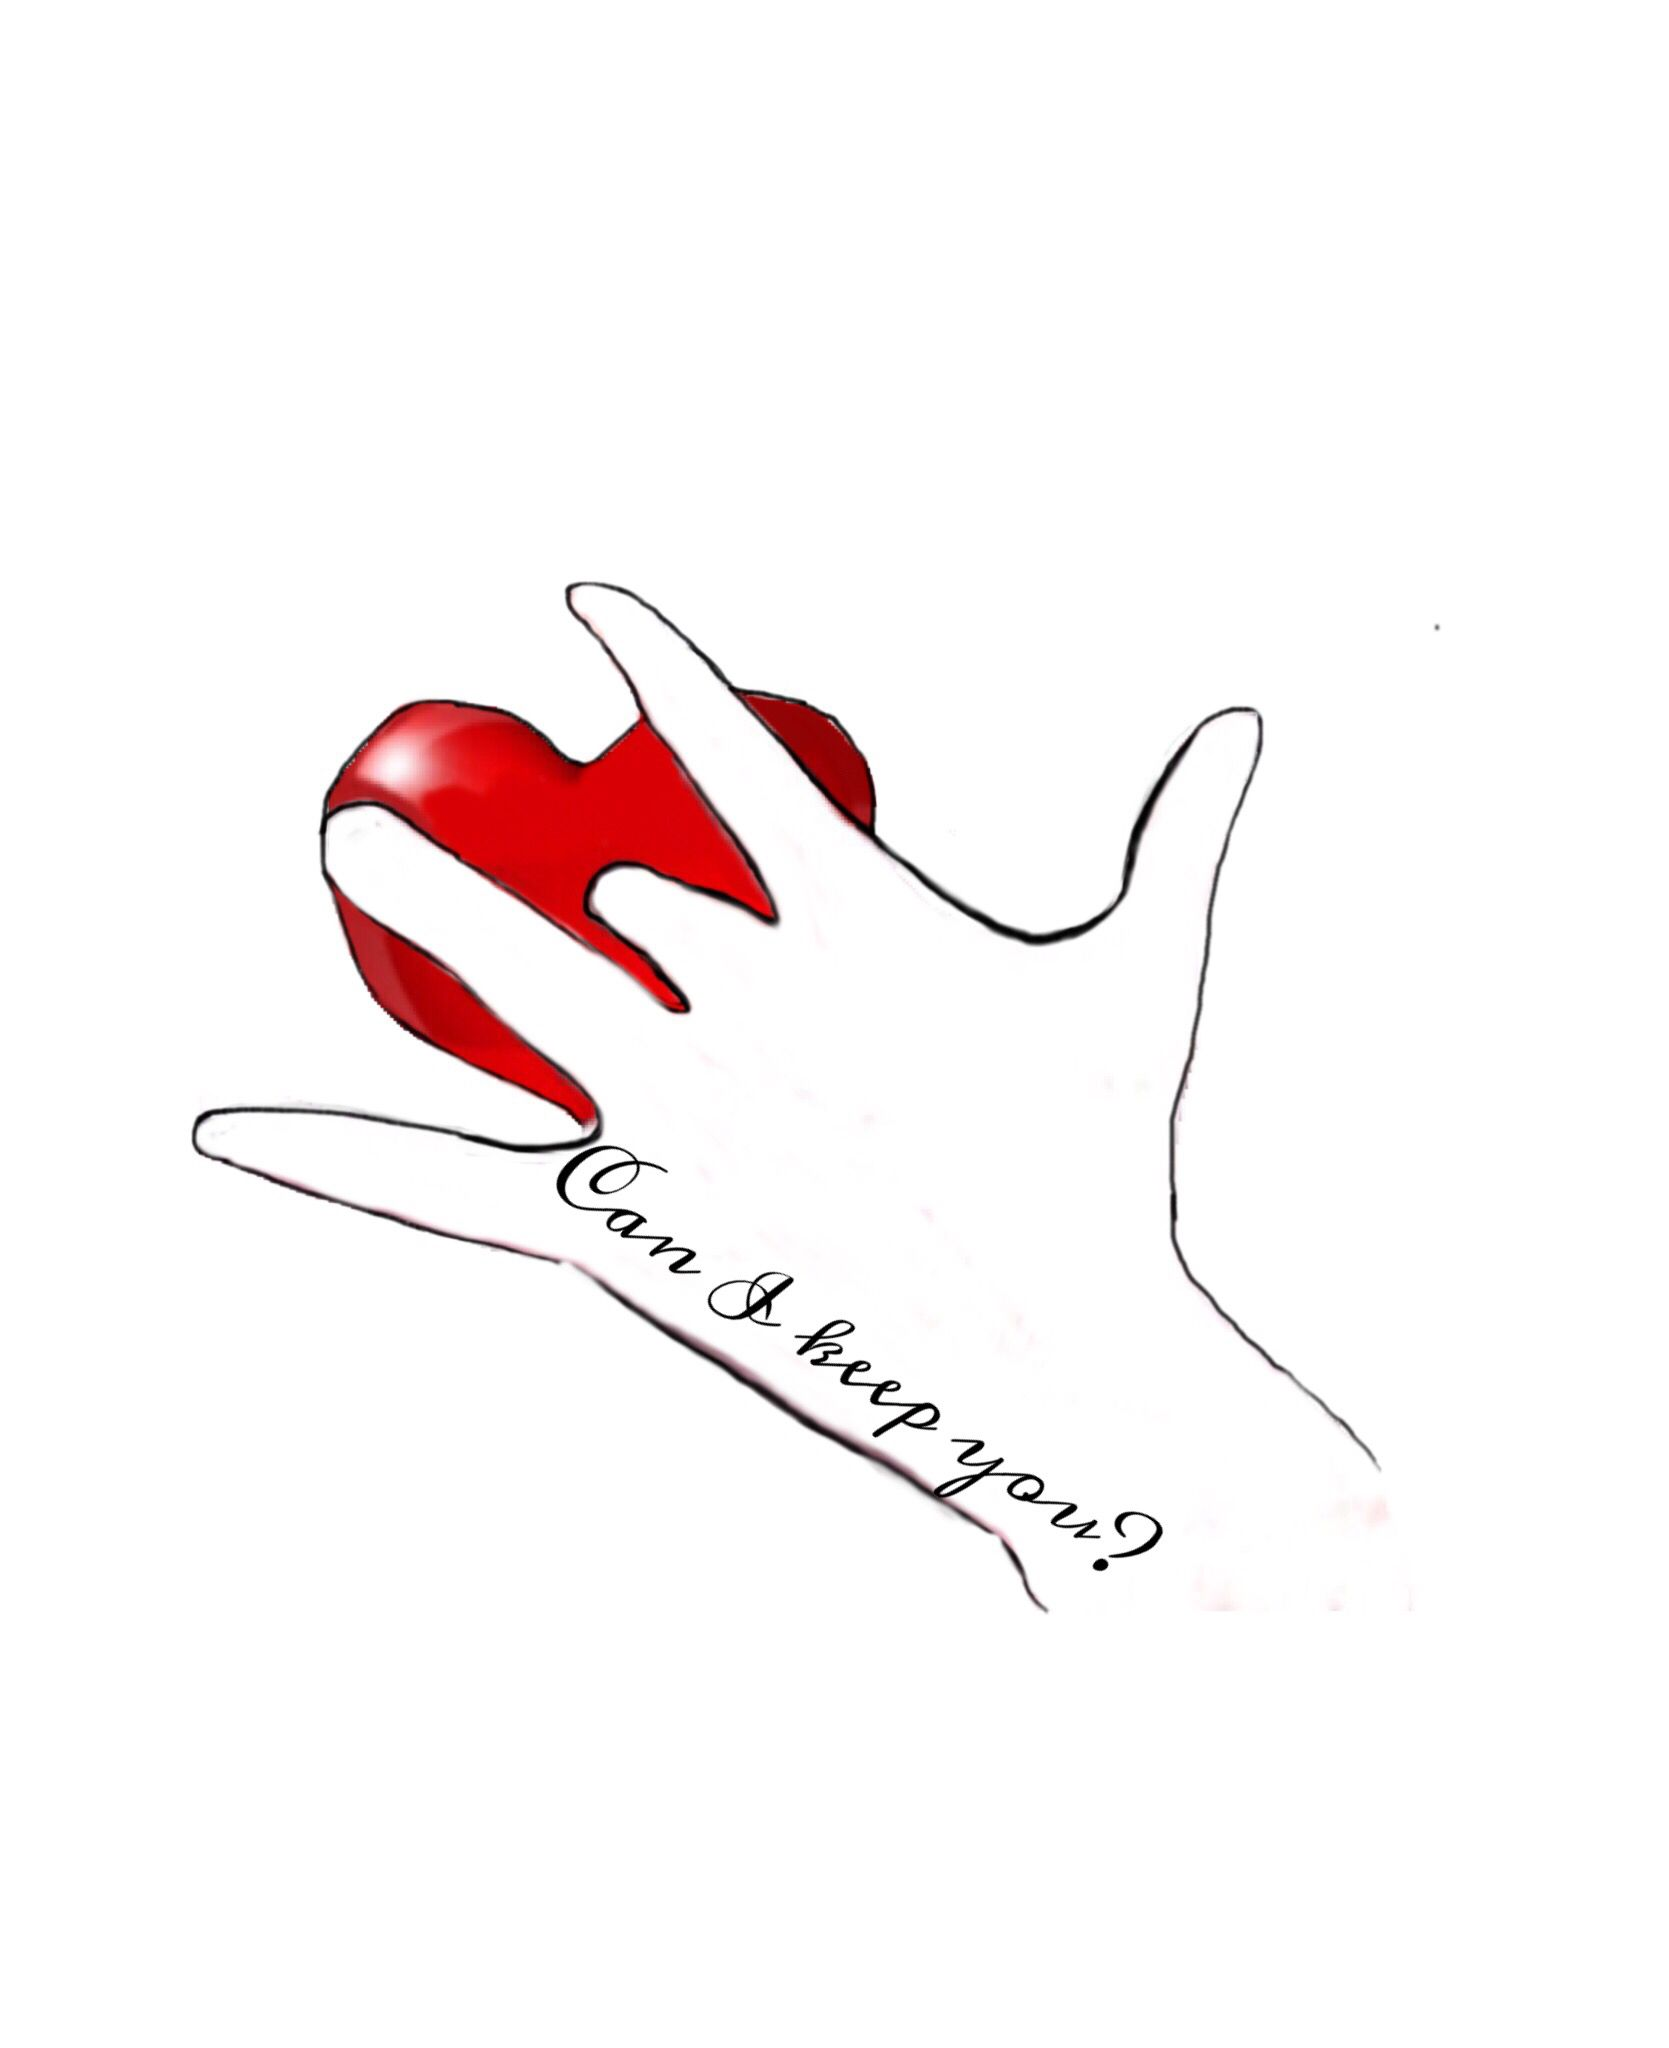 Asl, Touched Heart